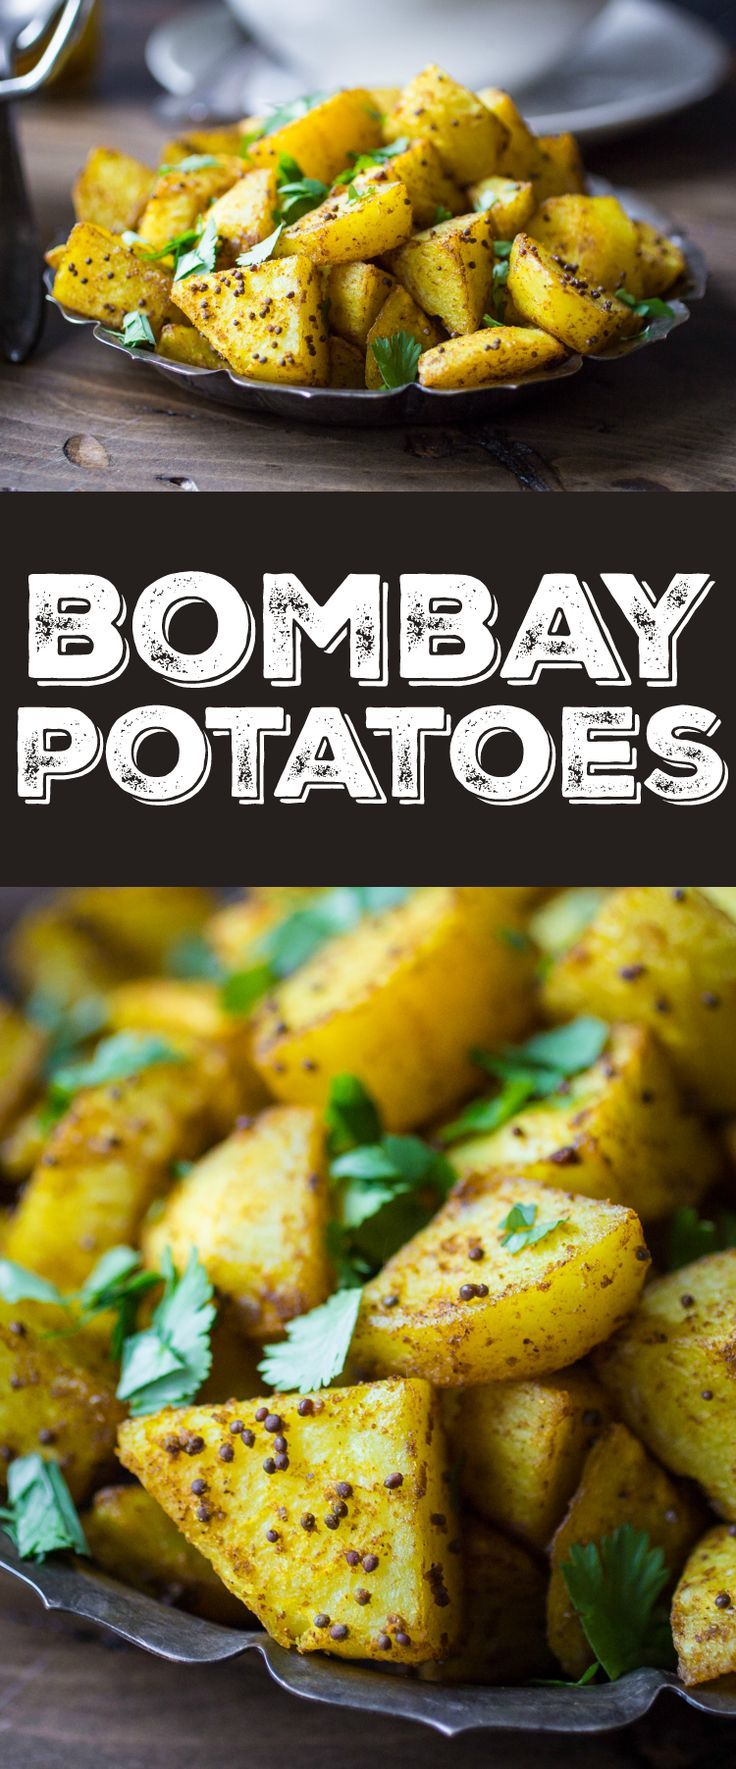 Crispy on the outside, fluffy on the inside, and richly spiced with Indian flavors -- Bombay Potatoes are the perfect side dish for any Indian meal!